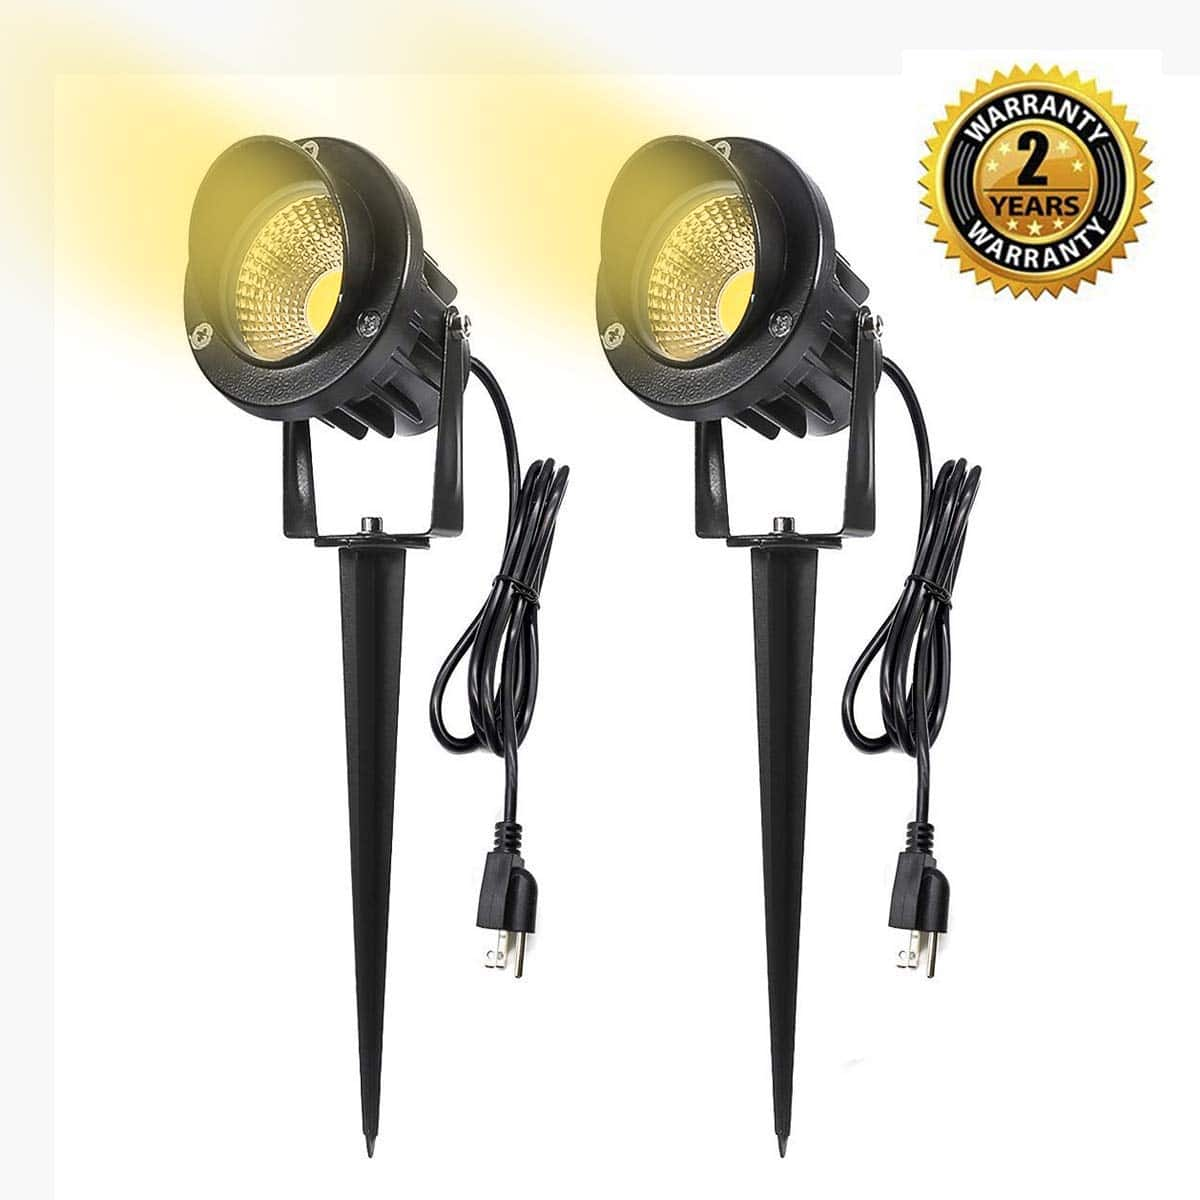 Landscape LED Spotlights Aluminum with spikes (2-Pack) -- $9.99